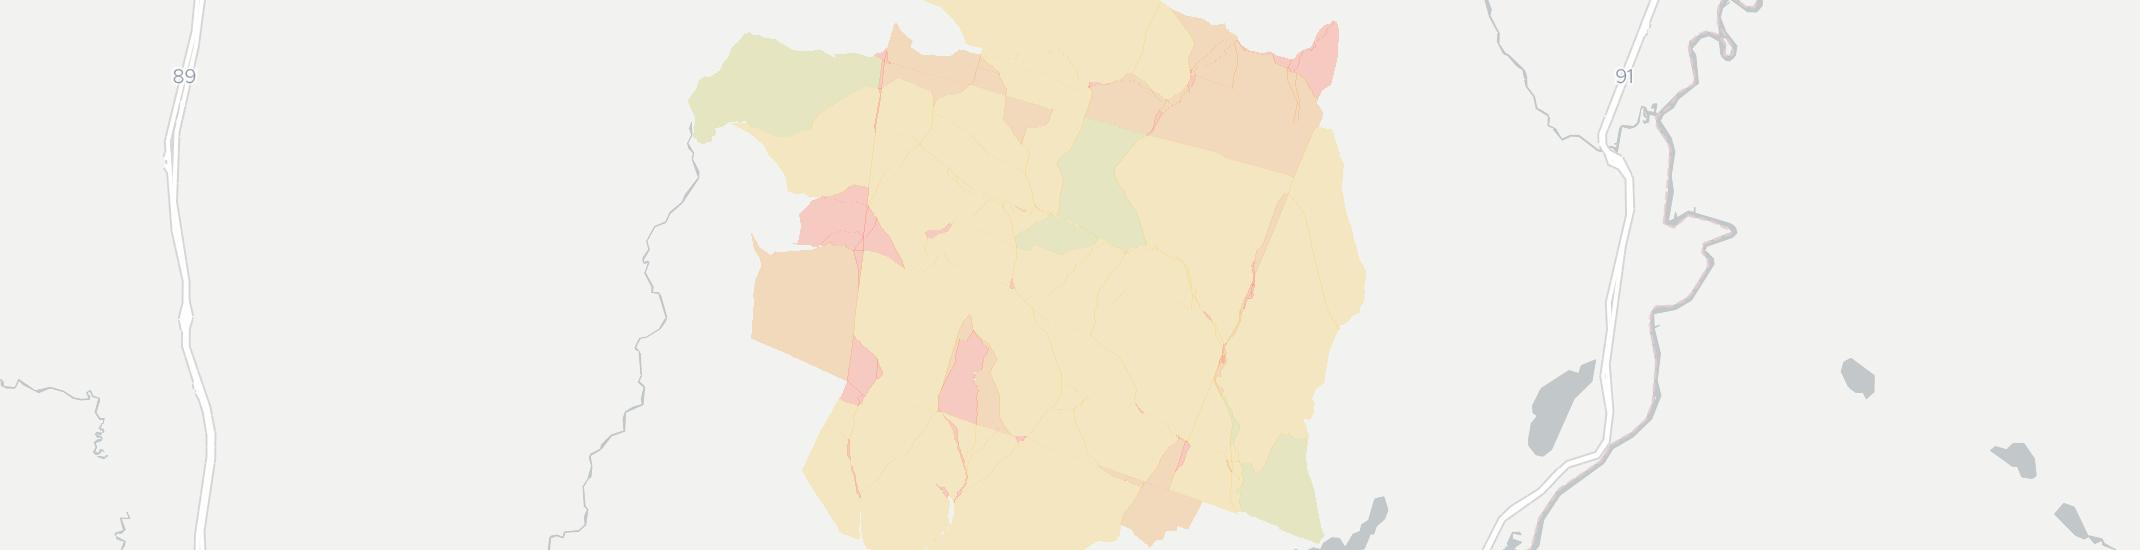 Vershire Internet Competition Map. Click for interactive map.